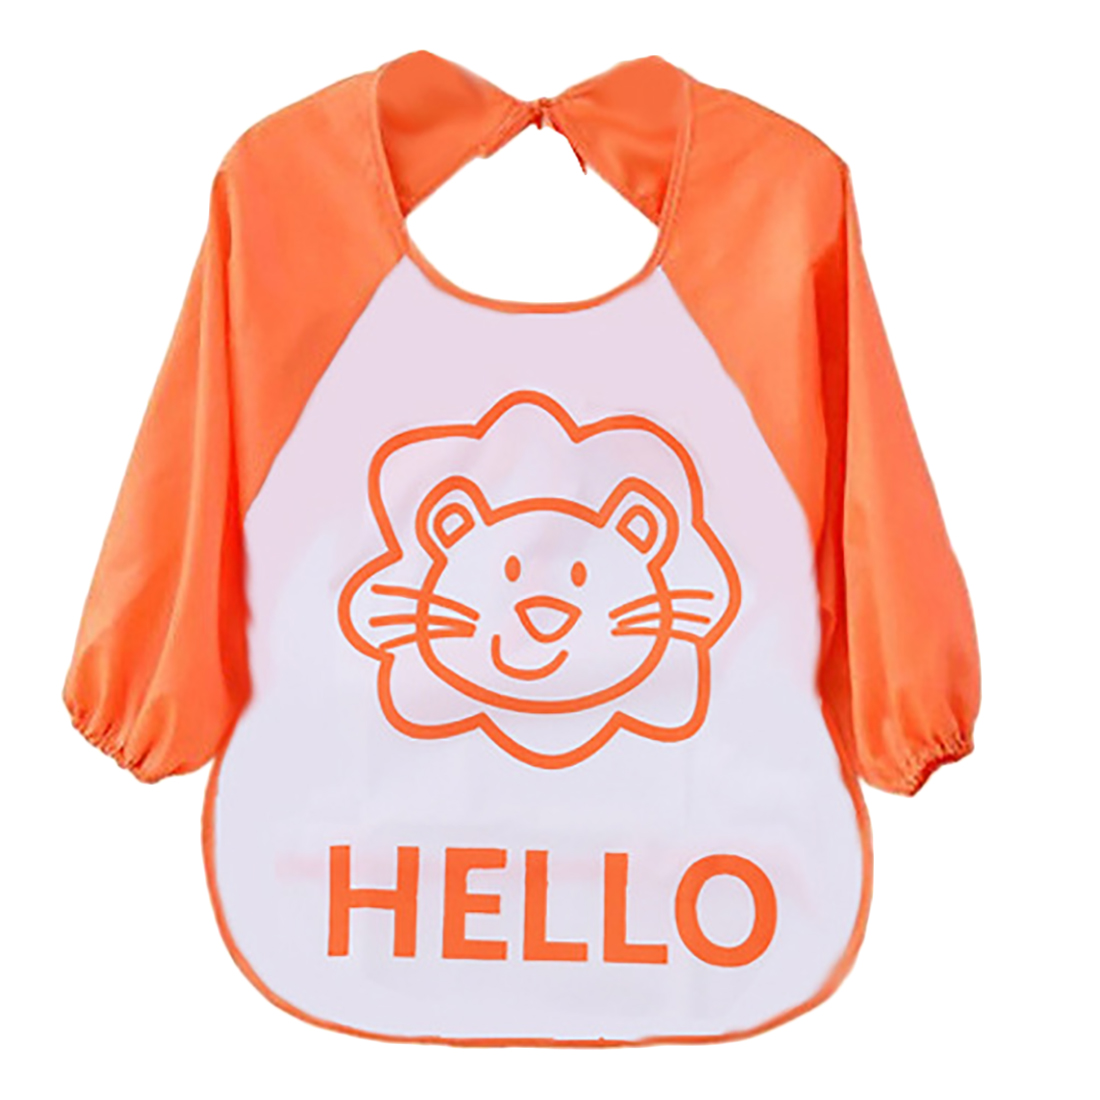 Baby Bib Apron Unisex Cartoon Animal Infant Toddler Baby Waterproof Long Sleeve Lion Pattern Bib Apron Kids